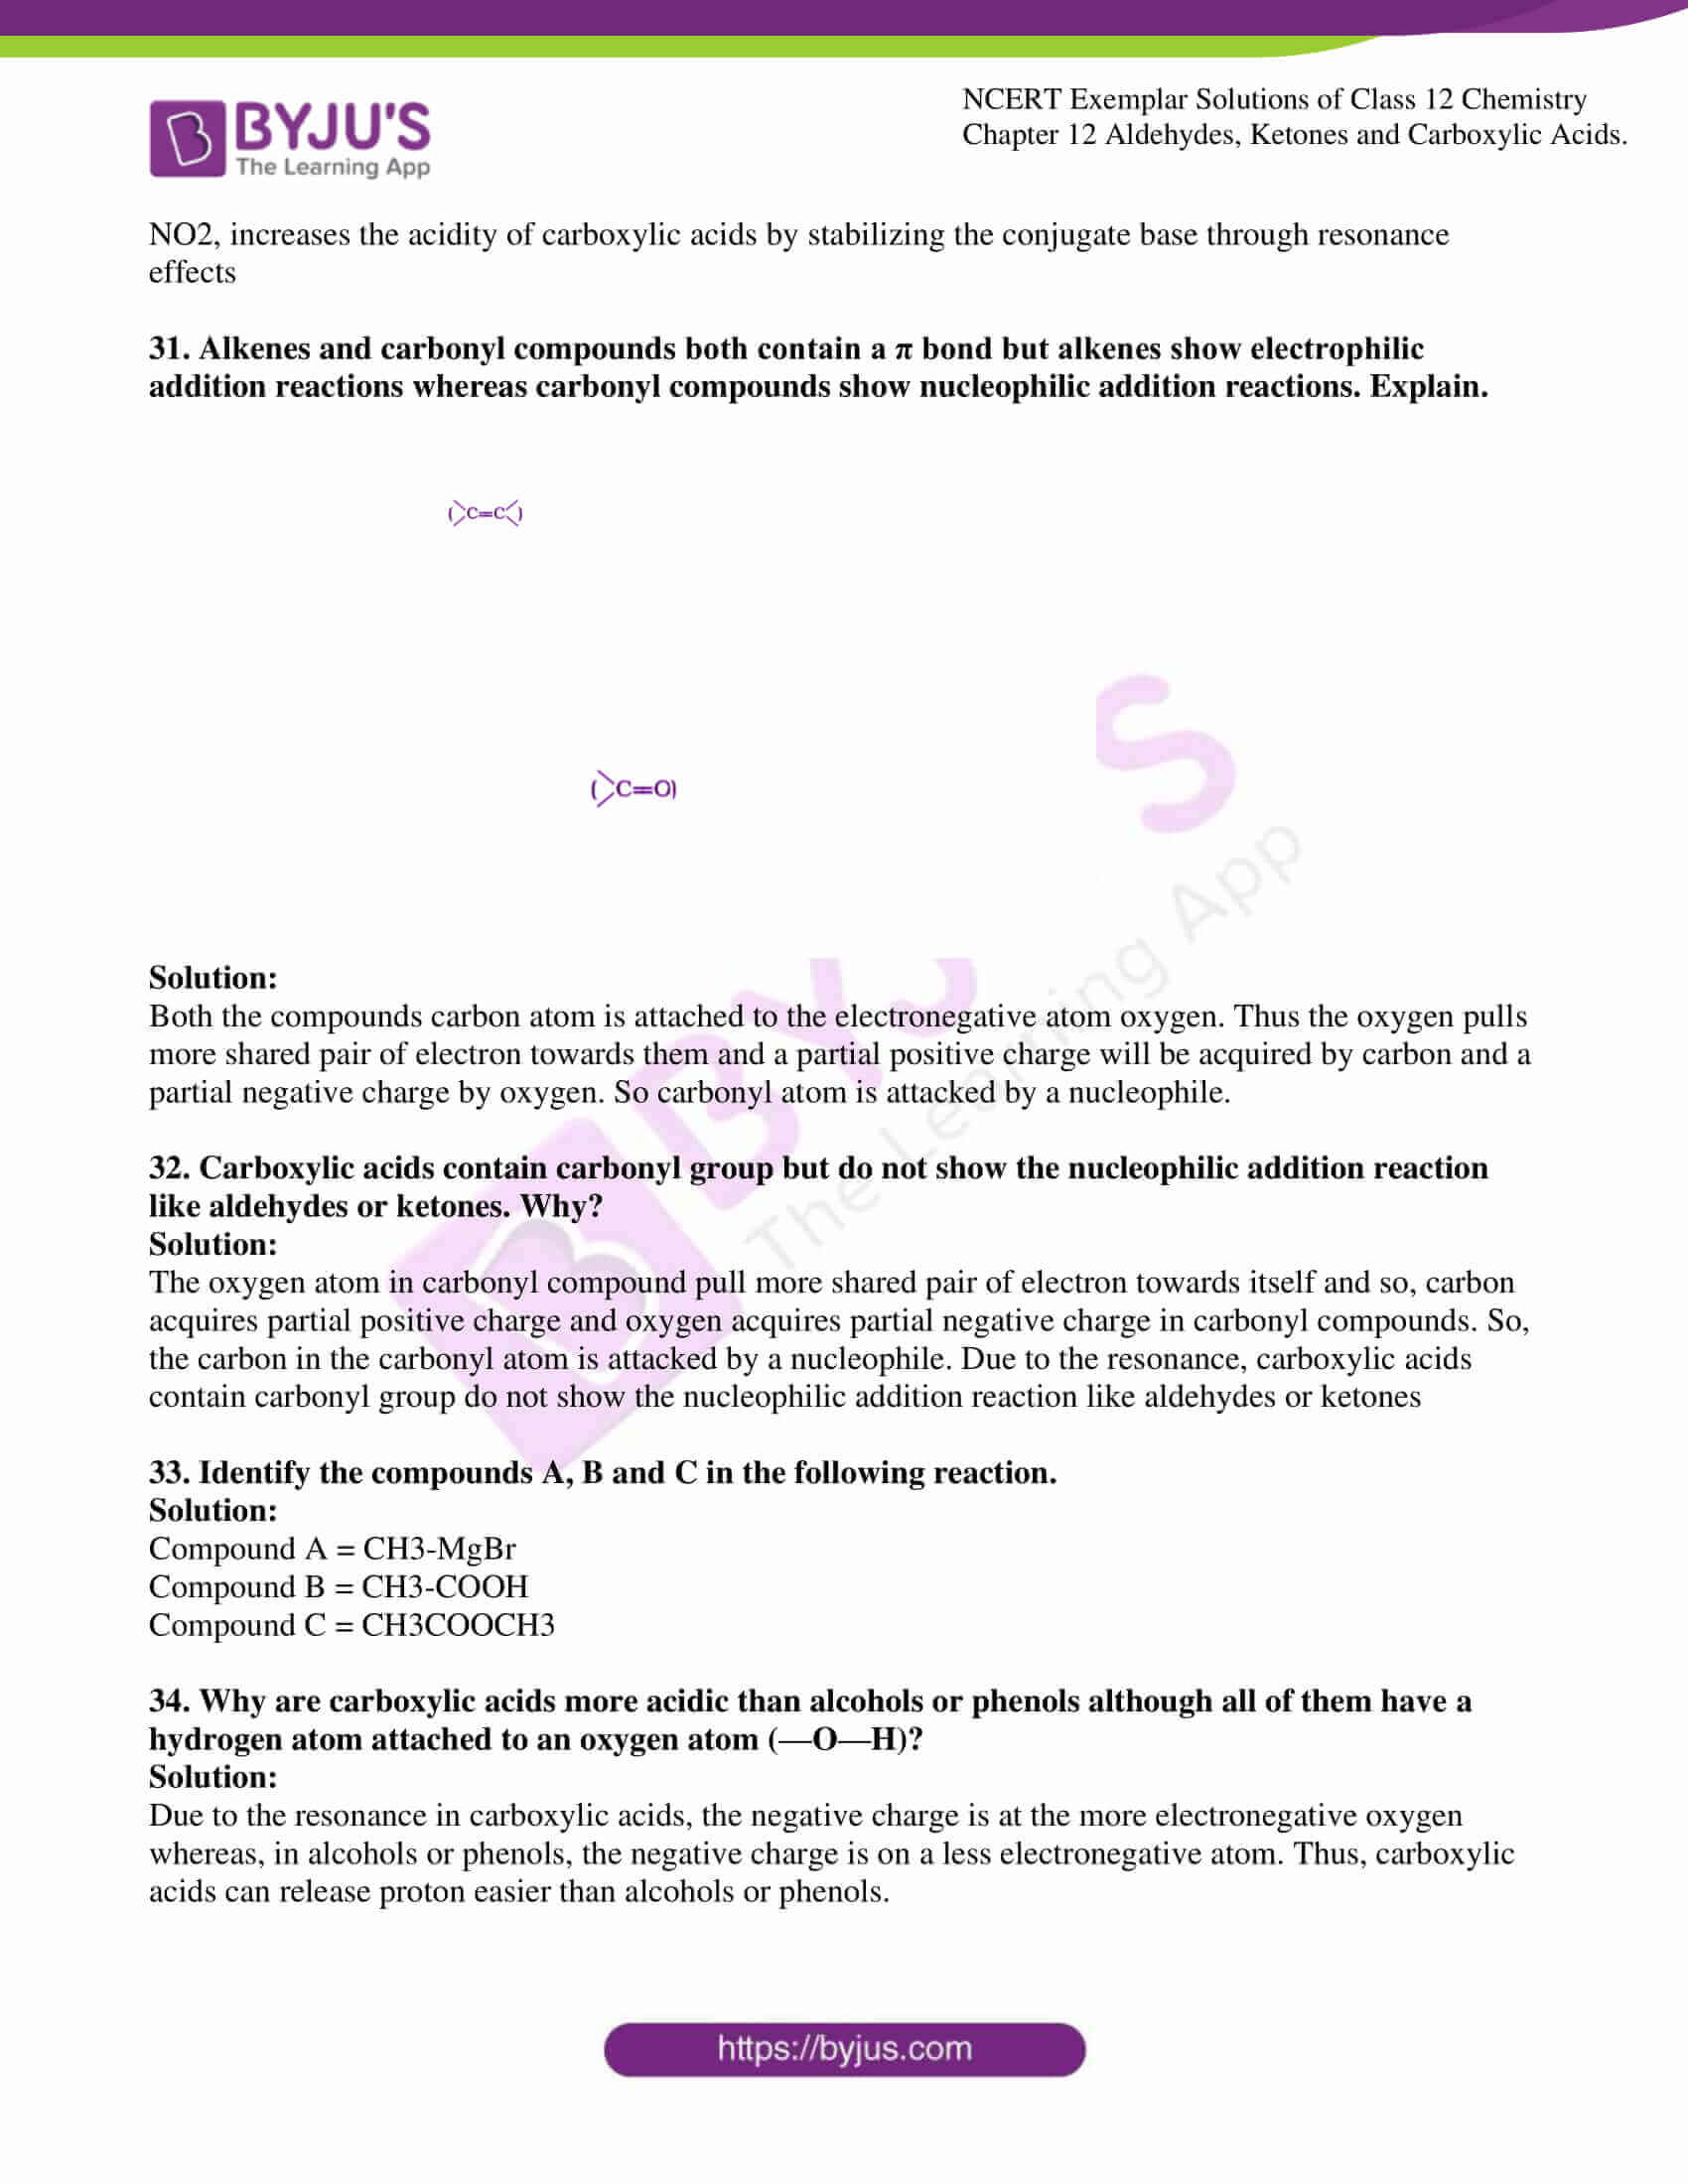 ncert exemplar solutions for class 12 chemistry chapter 12 11